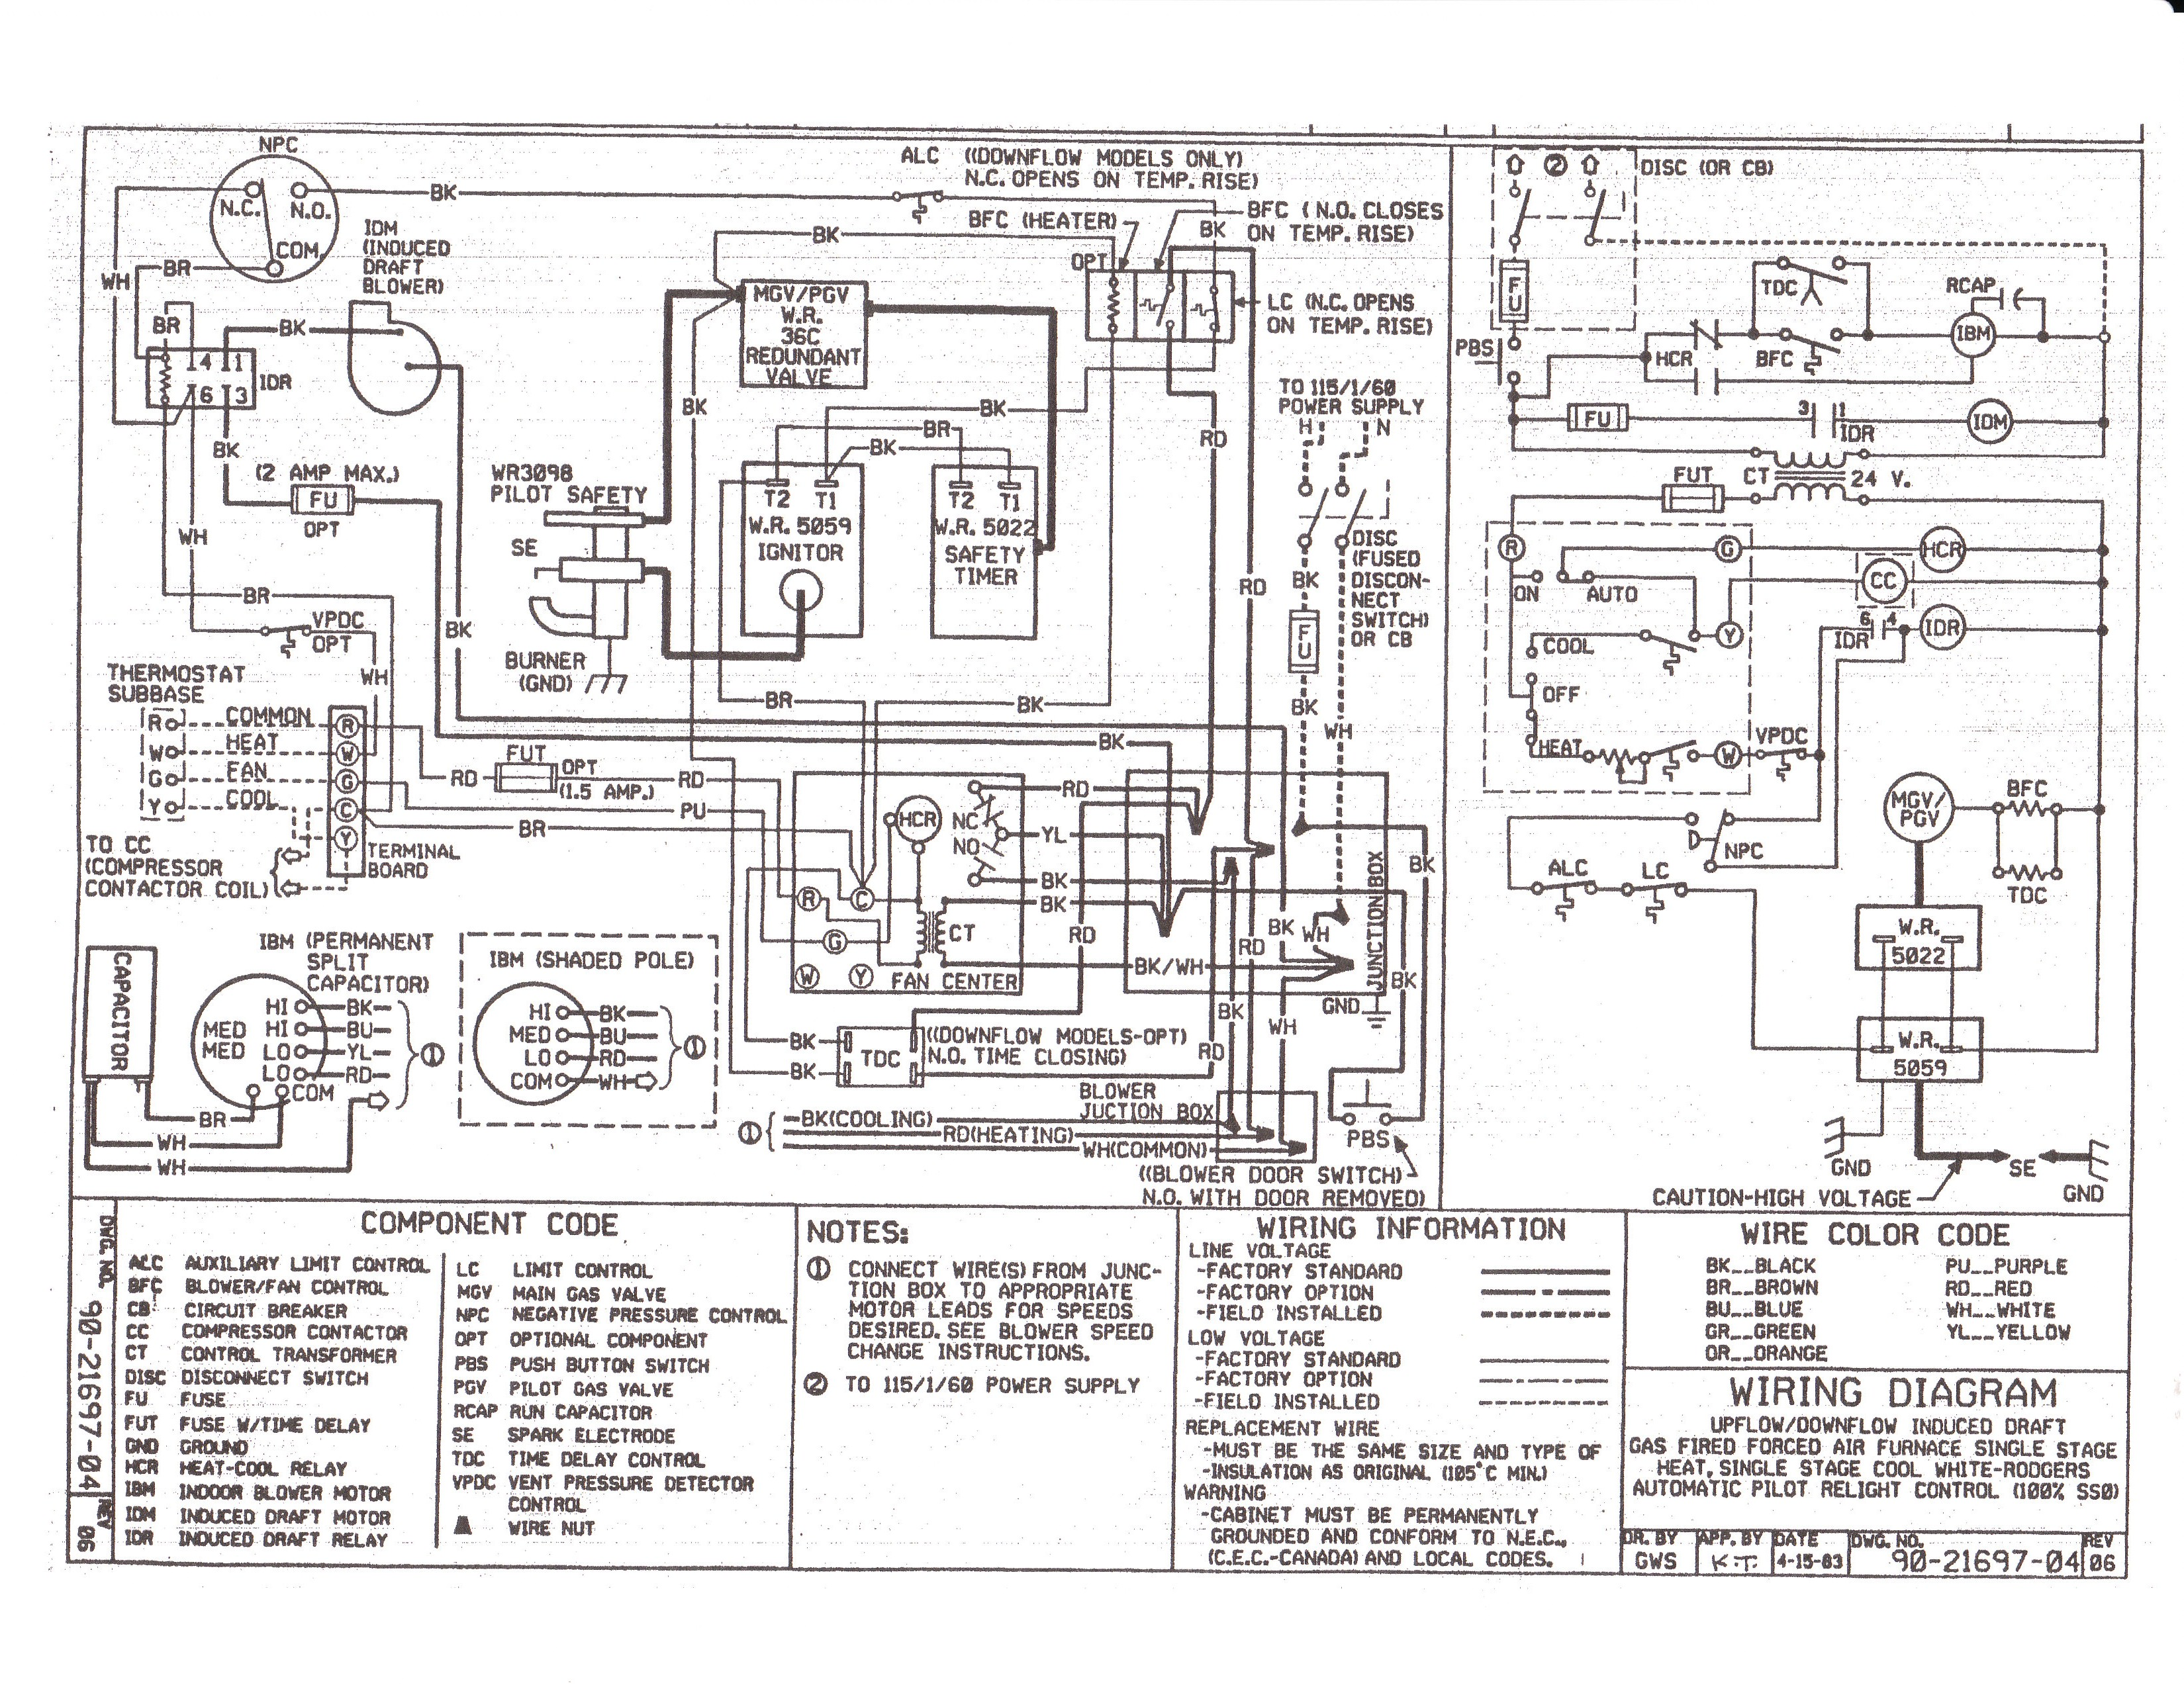 wiring diagram older furnace heater relay furnace wiring diagram older i have a signature gas furnace srm-54425a and having ...